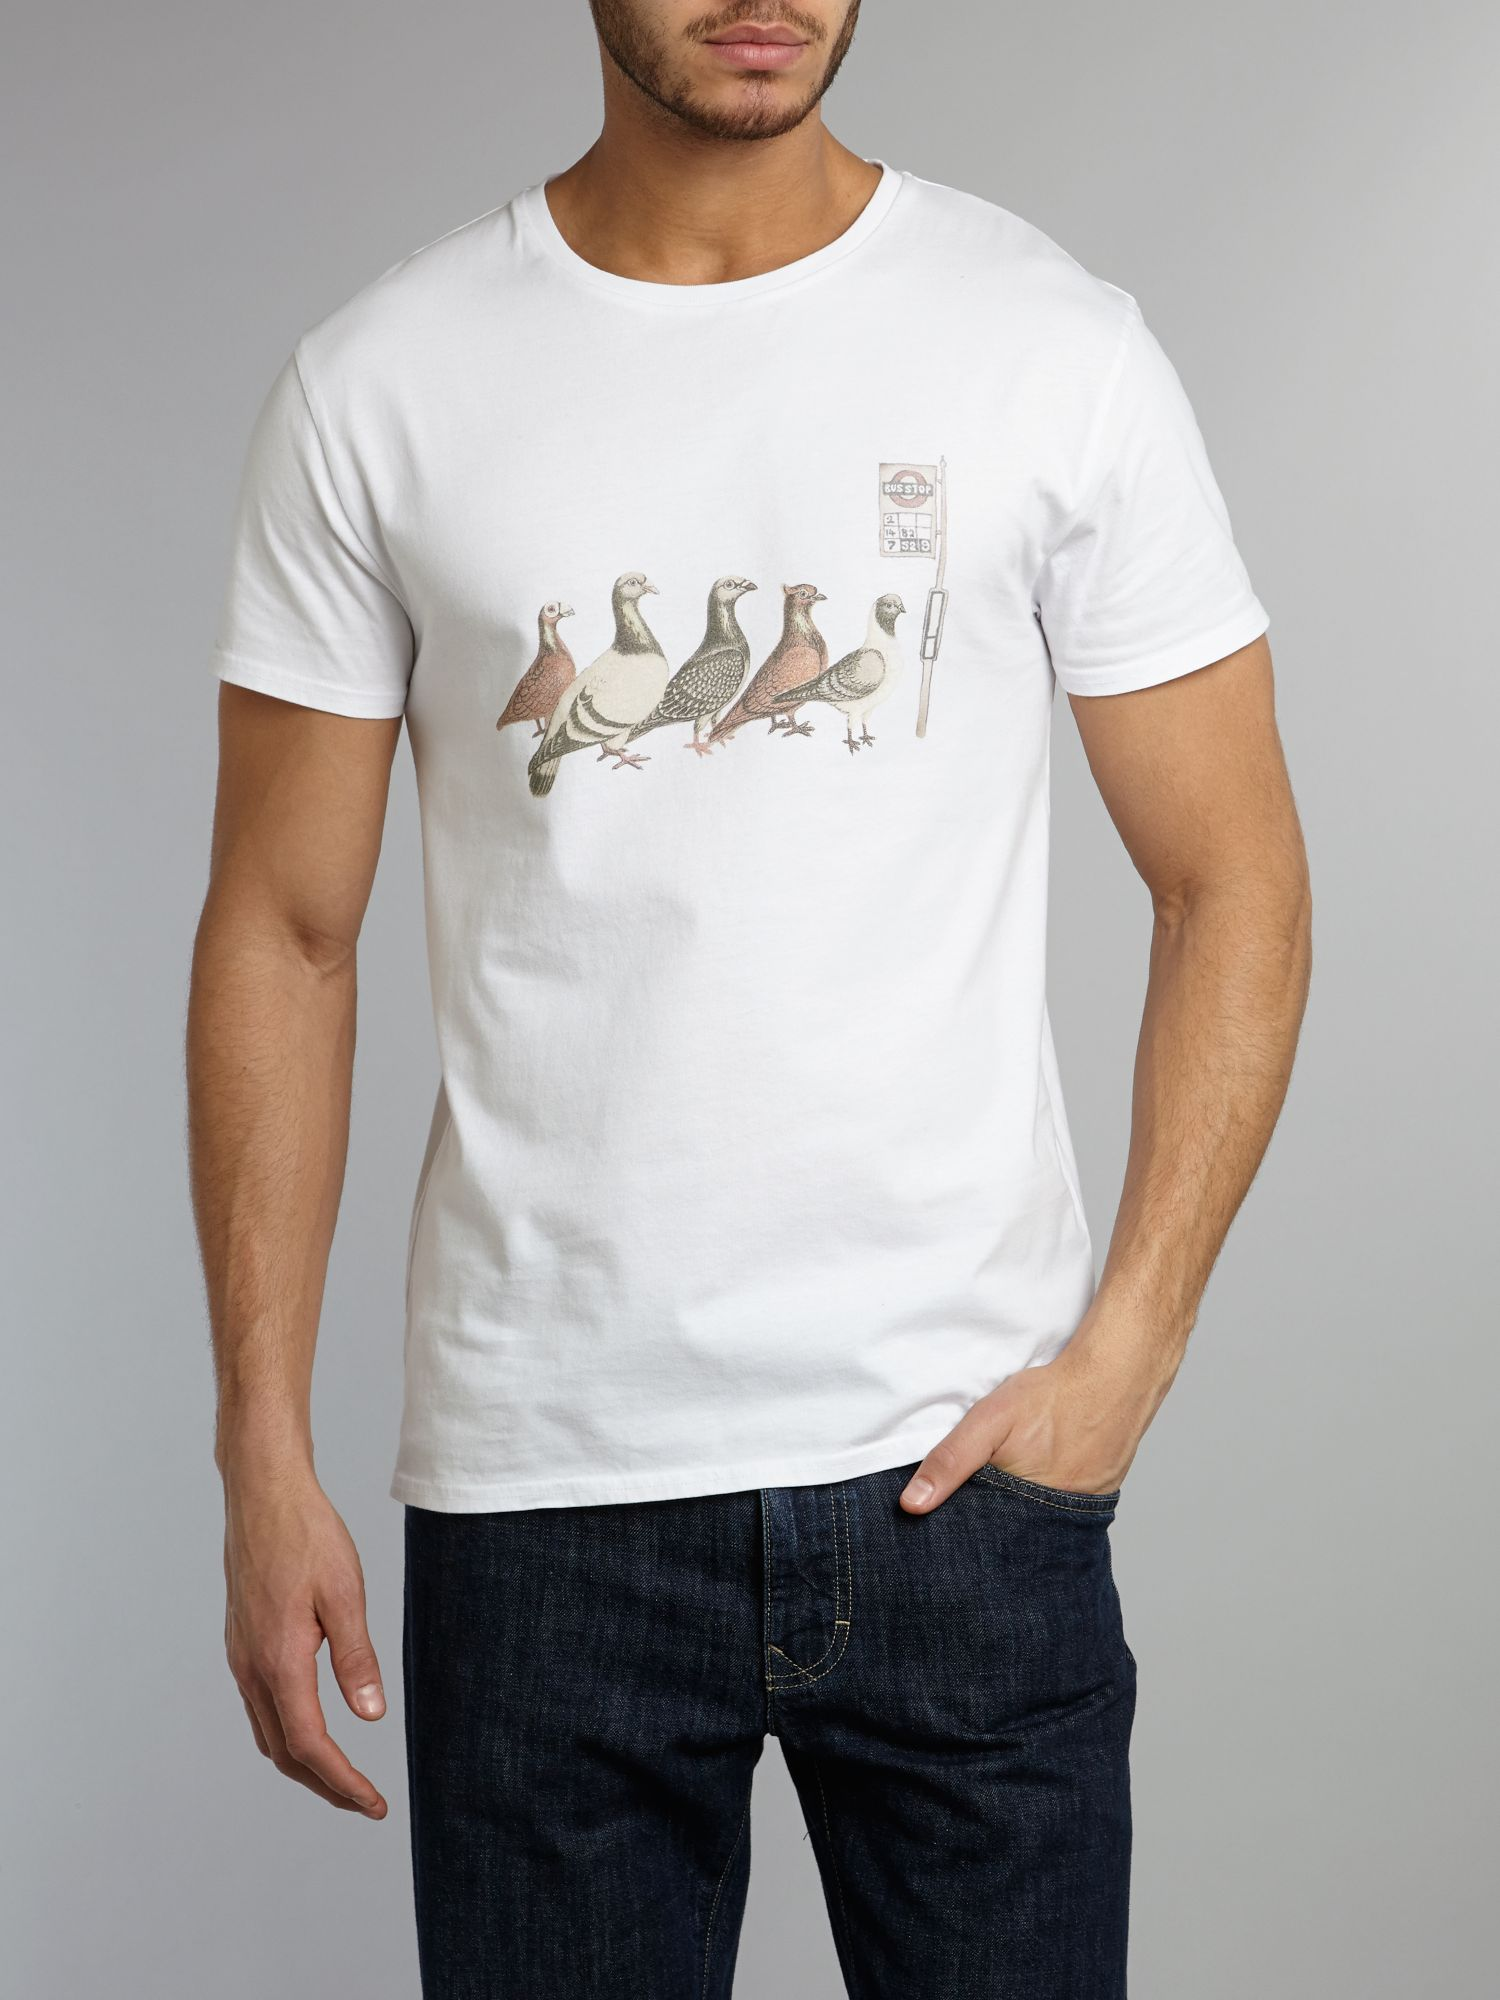 birds queuing at a bus stop graphic t-shirt